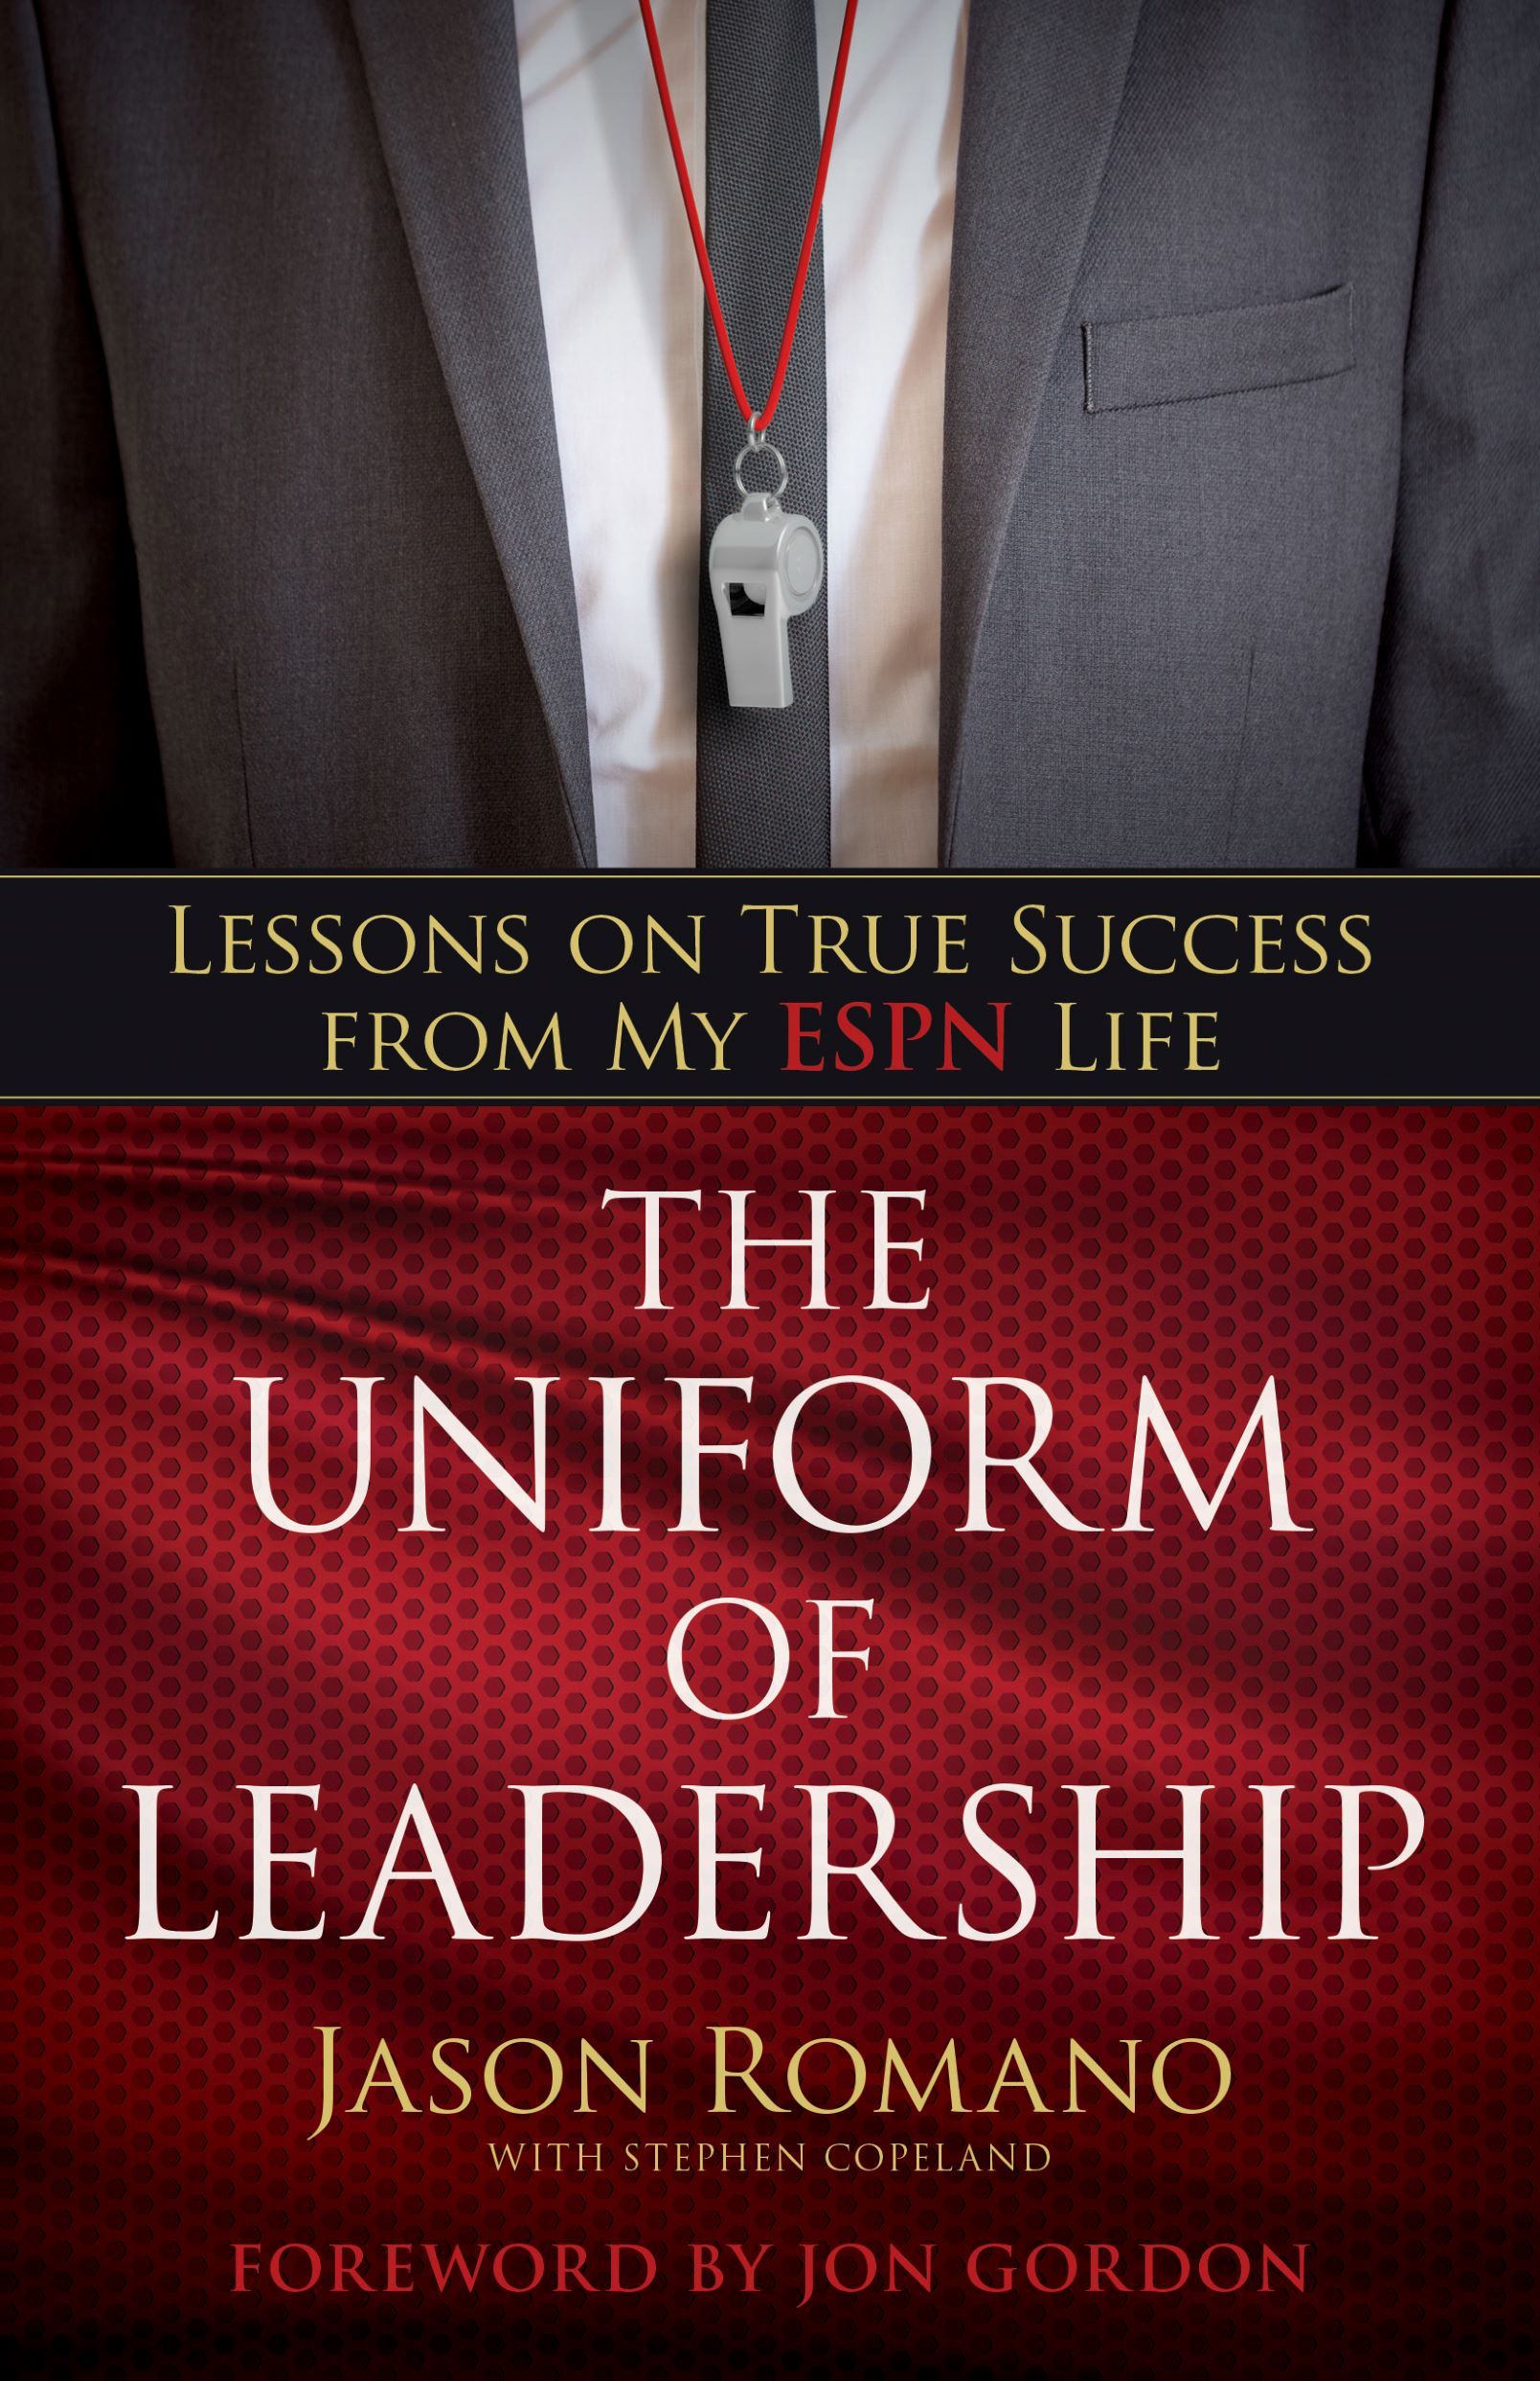 The Uniform of Leadership